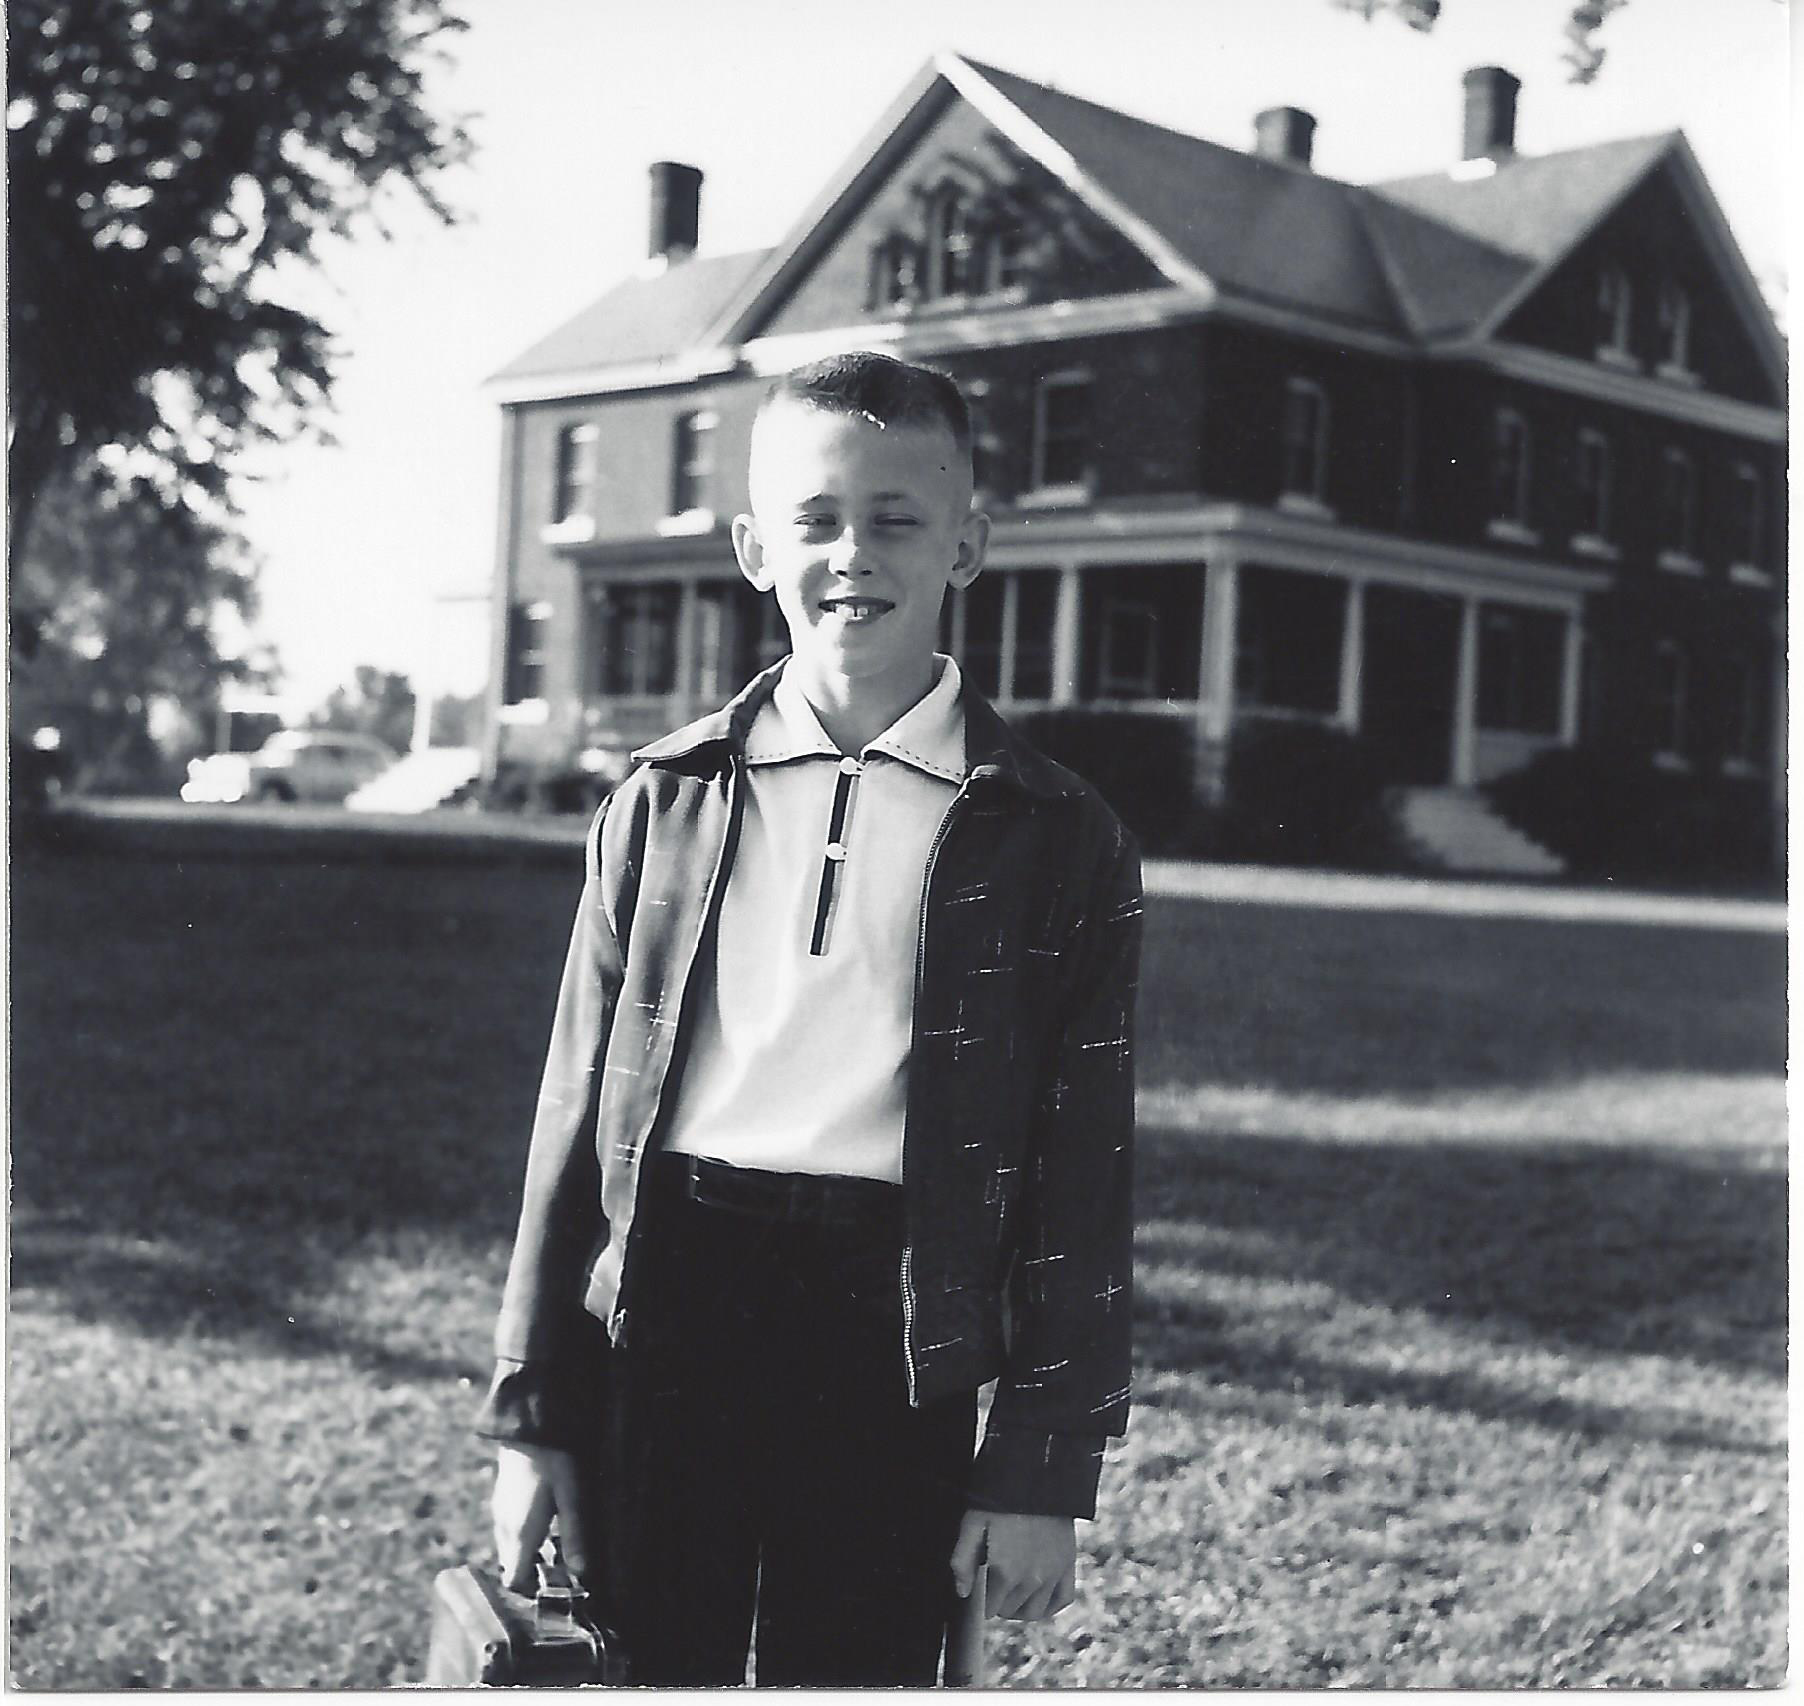 Steven Watson in front of 8 Taylor Avenue home in Fort Snelling, Minnesota, about 1952. Image by Richard E. Watson, M.D., courtesy of the author.